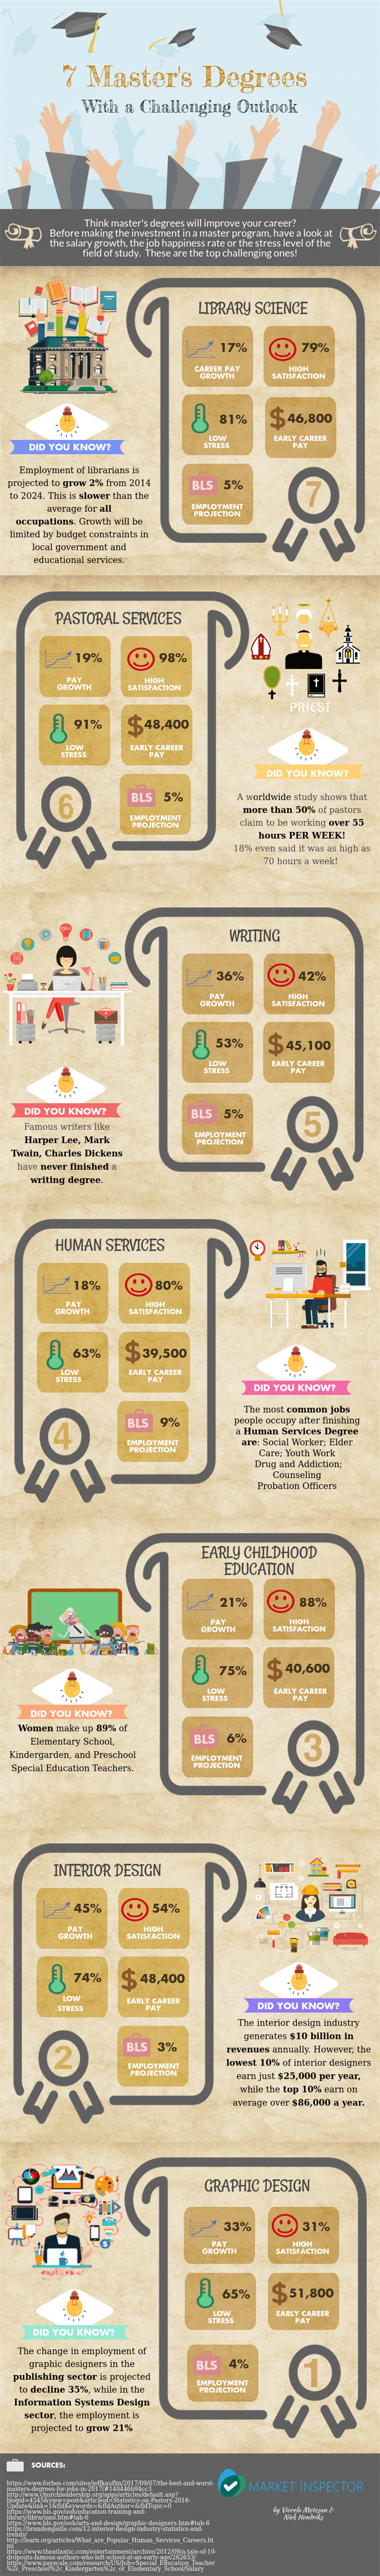 Future Value of Masters' Degrees? 7 Specializations with a Challenging Outlook - Infographic